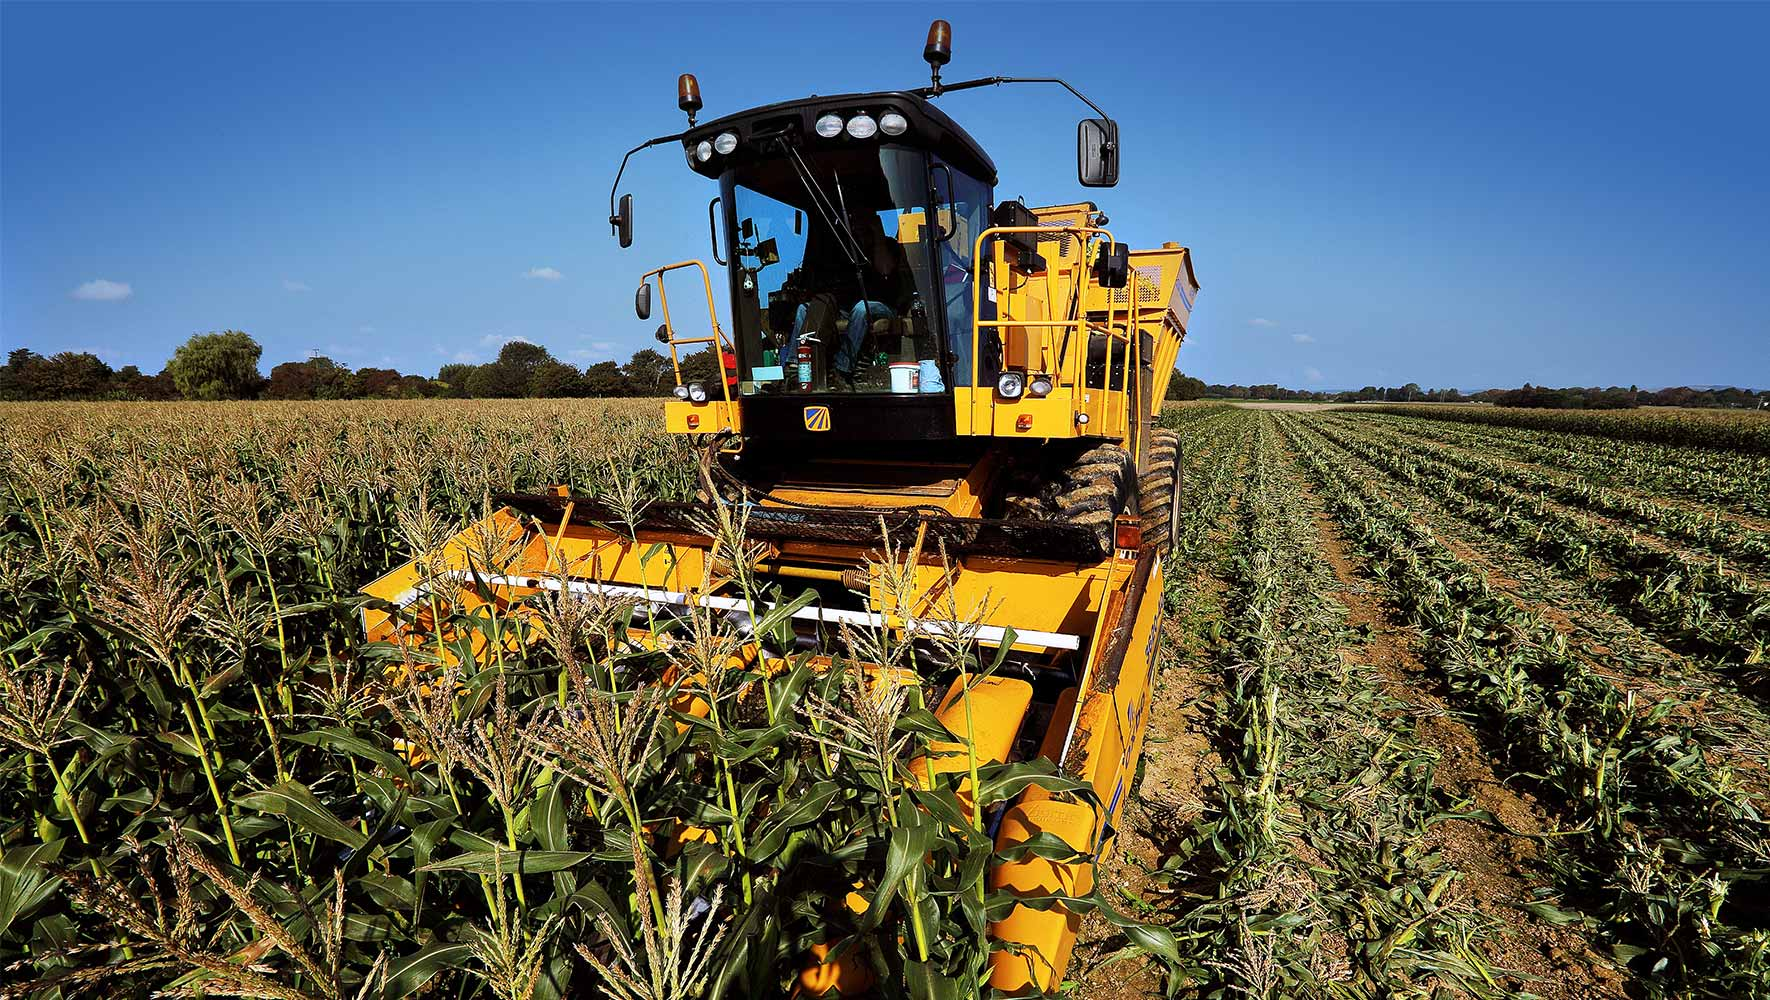 Photograph of a sweetcorn harvester in operation on the Barfoots UK farm